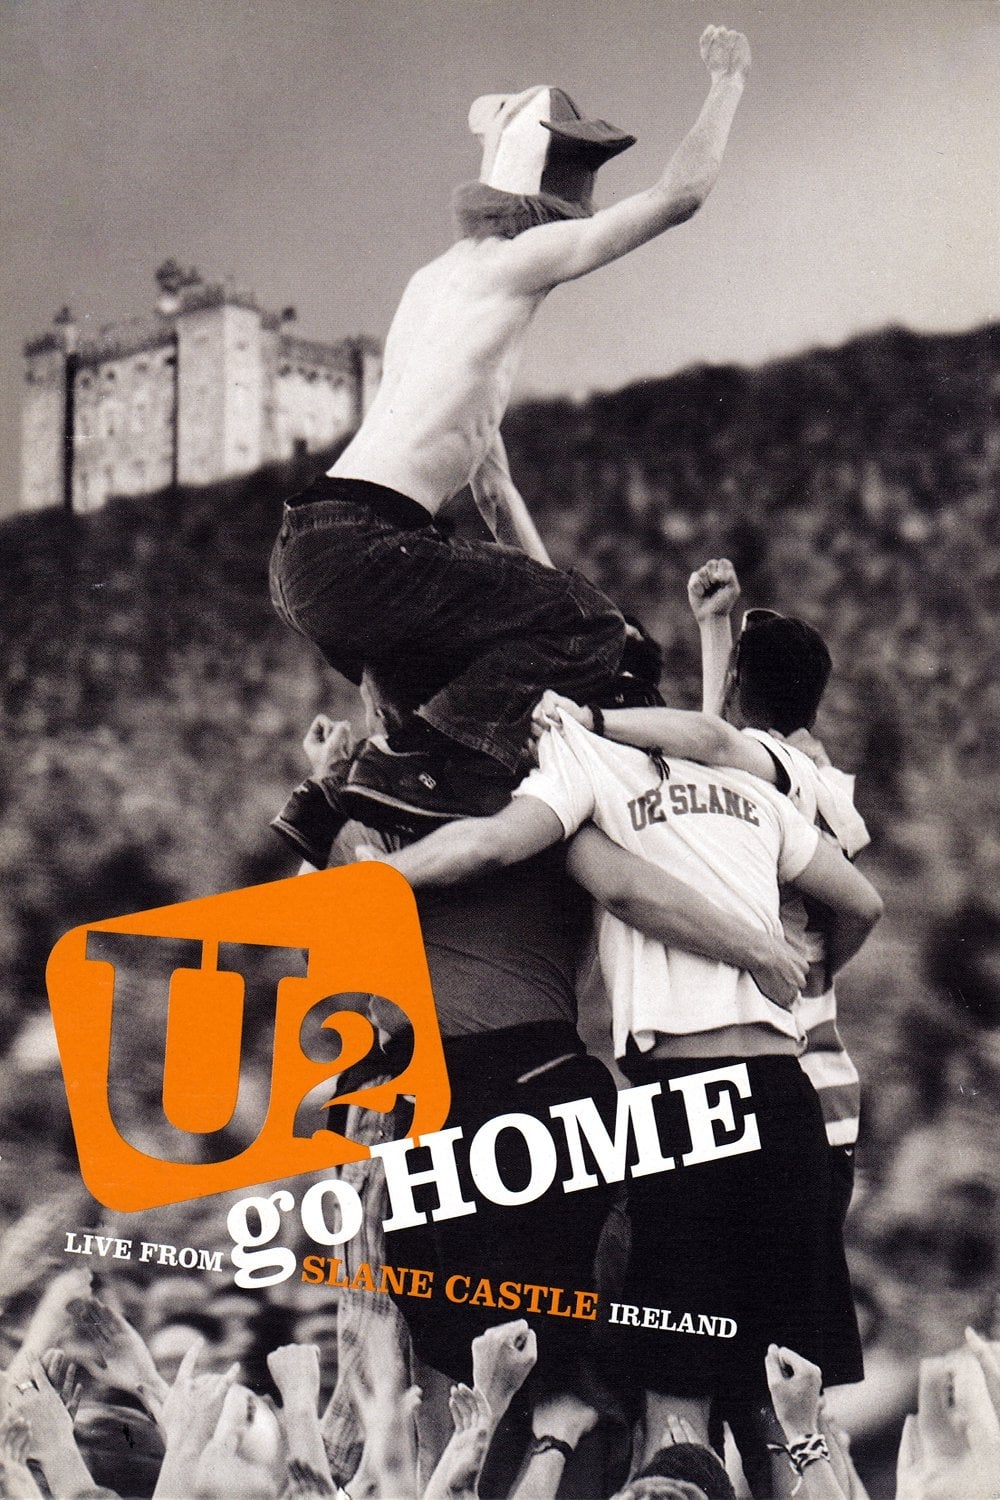 U2: Go Home - Live from Slane Castle (2003)